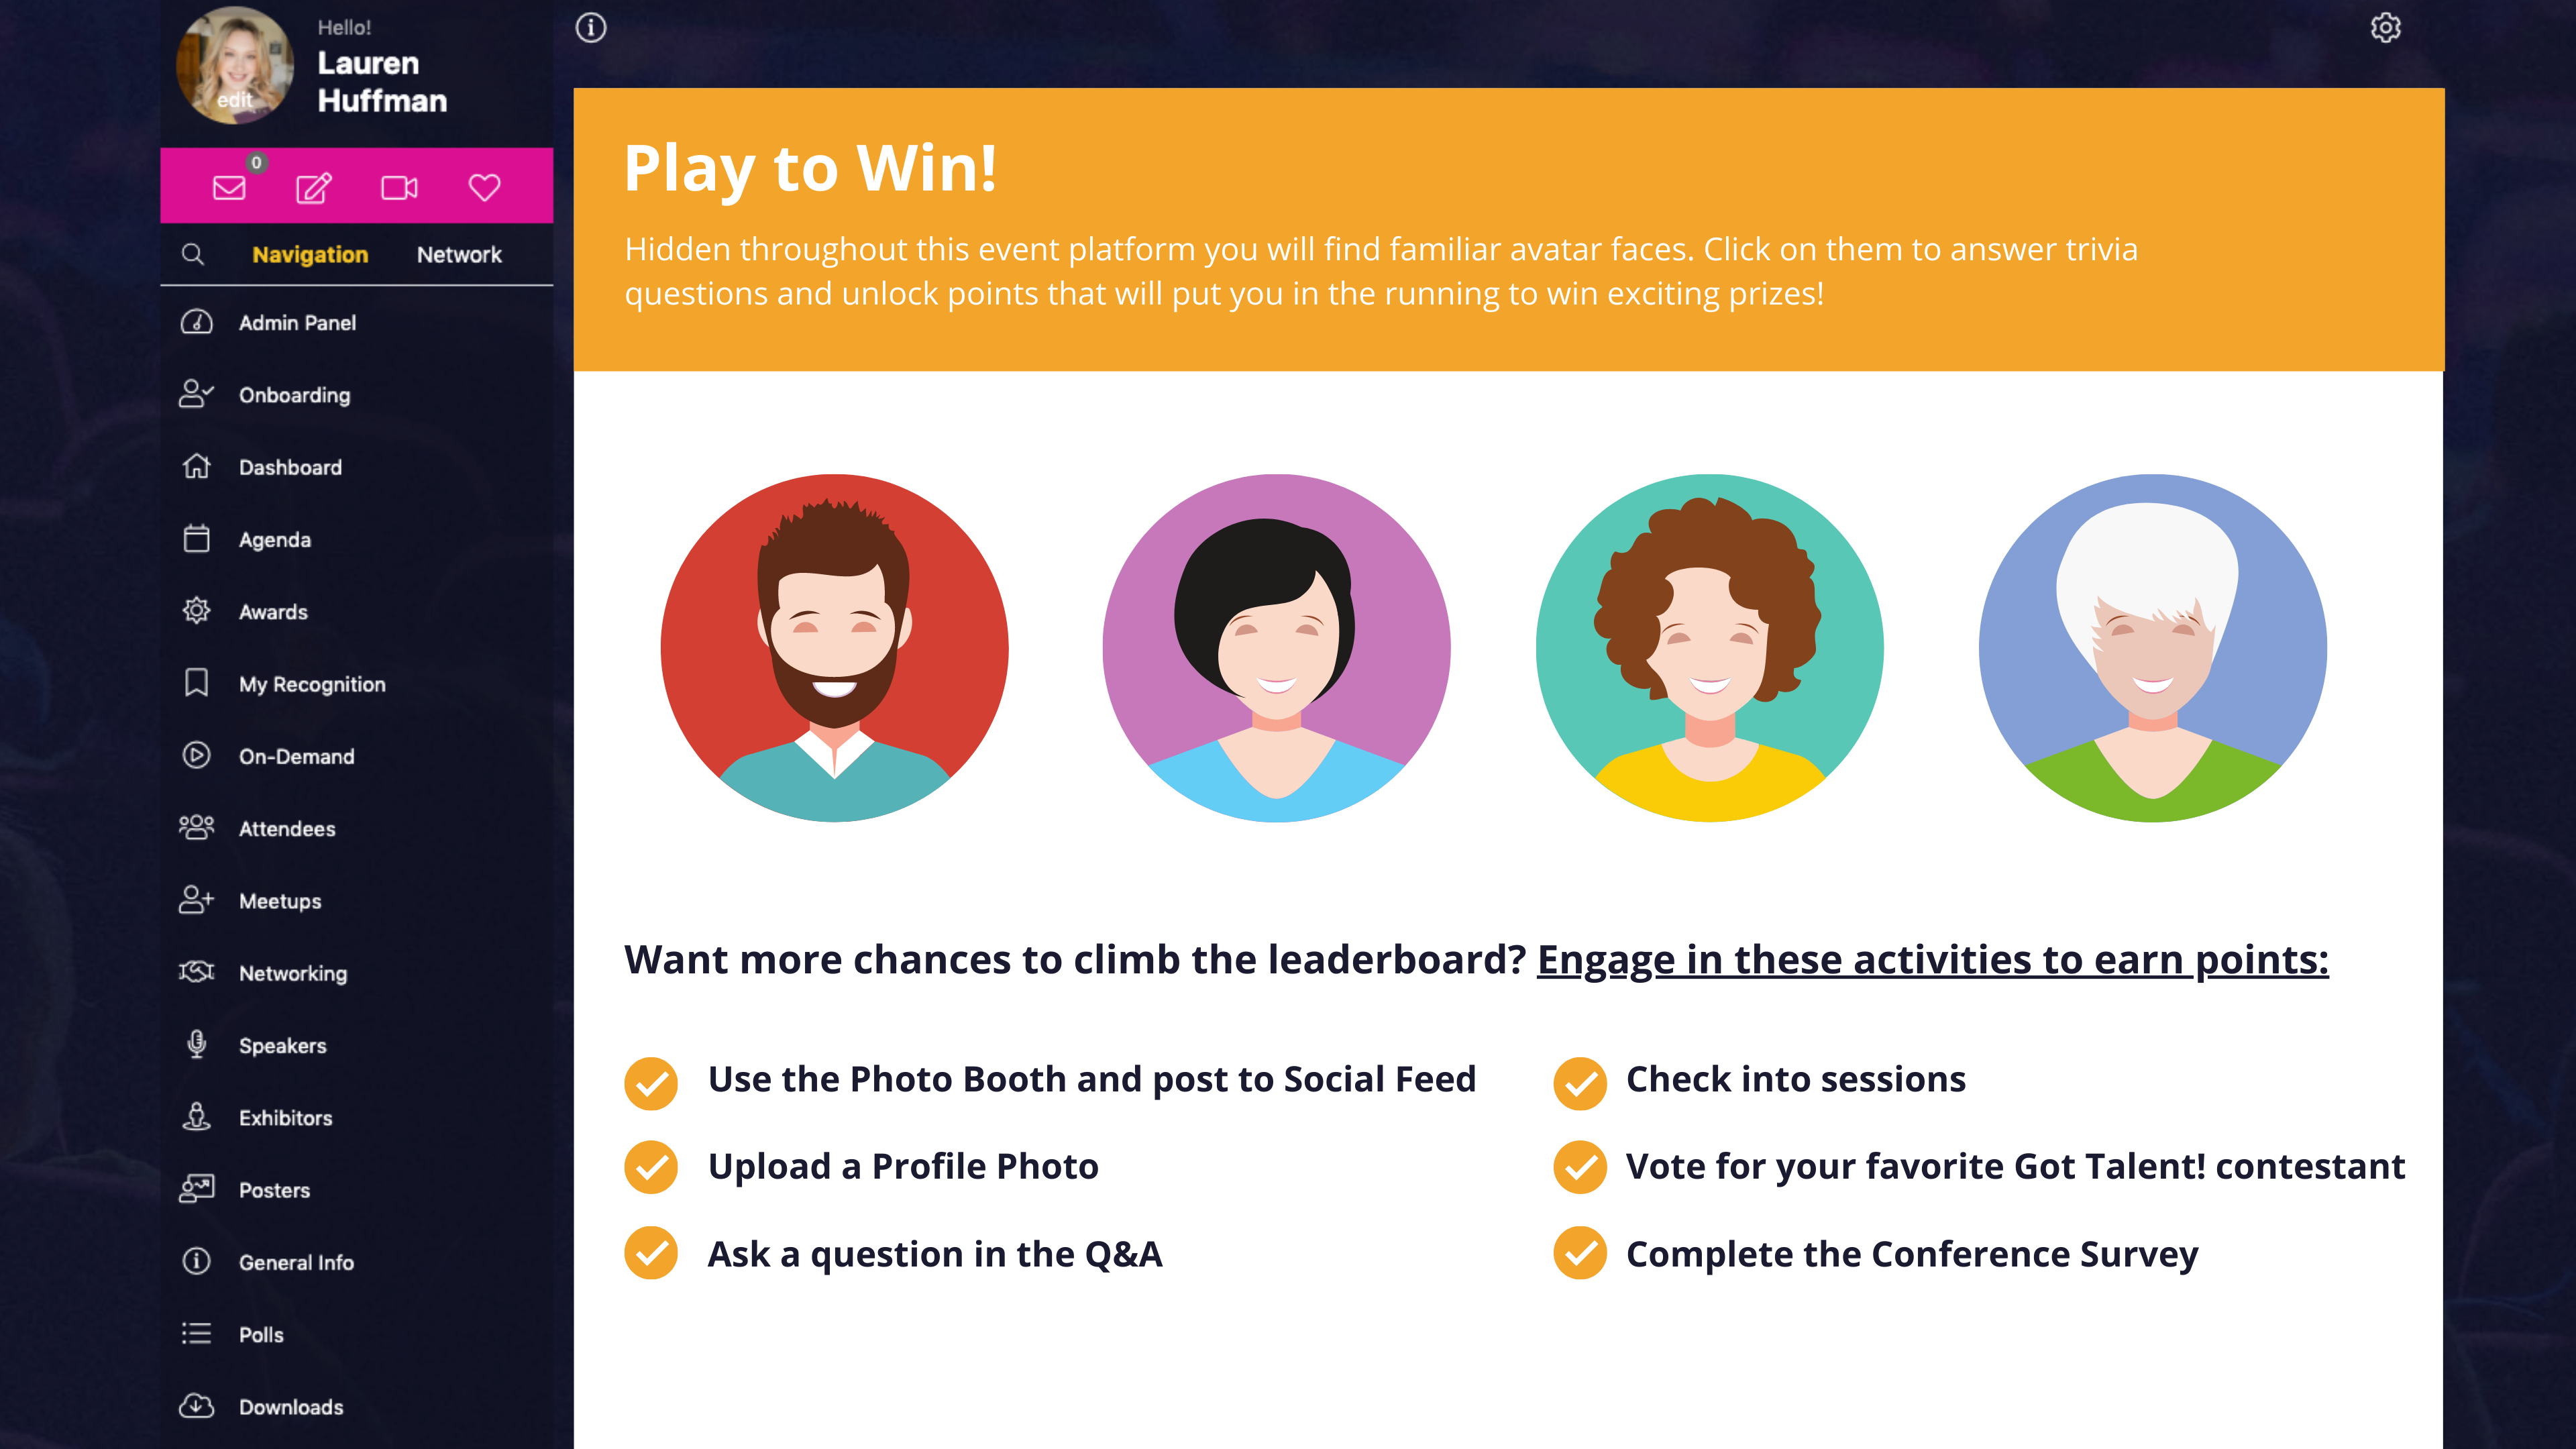 Gamification in an Event Platform